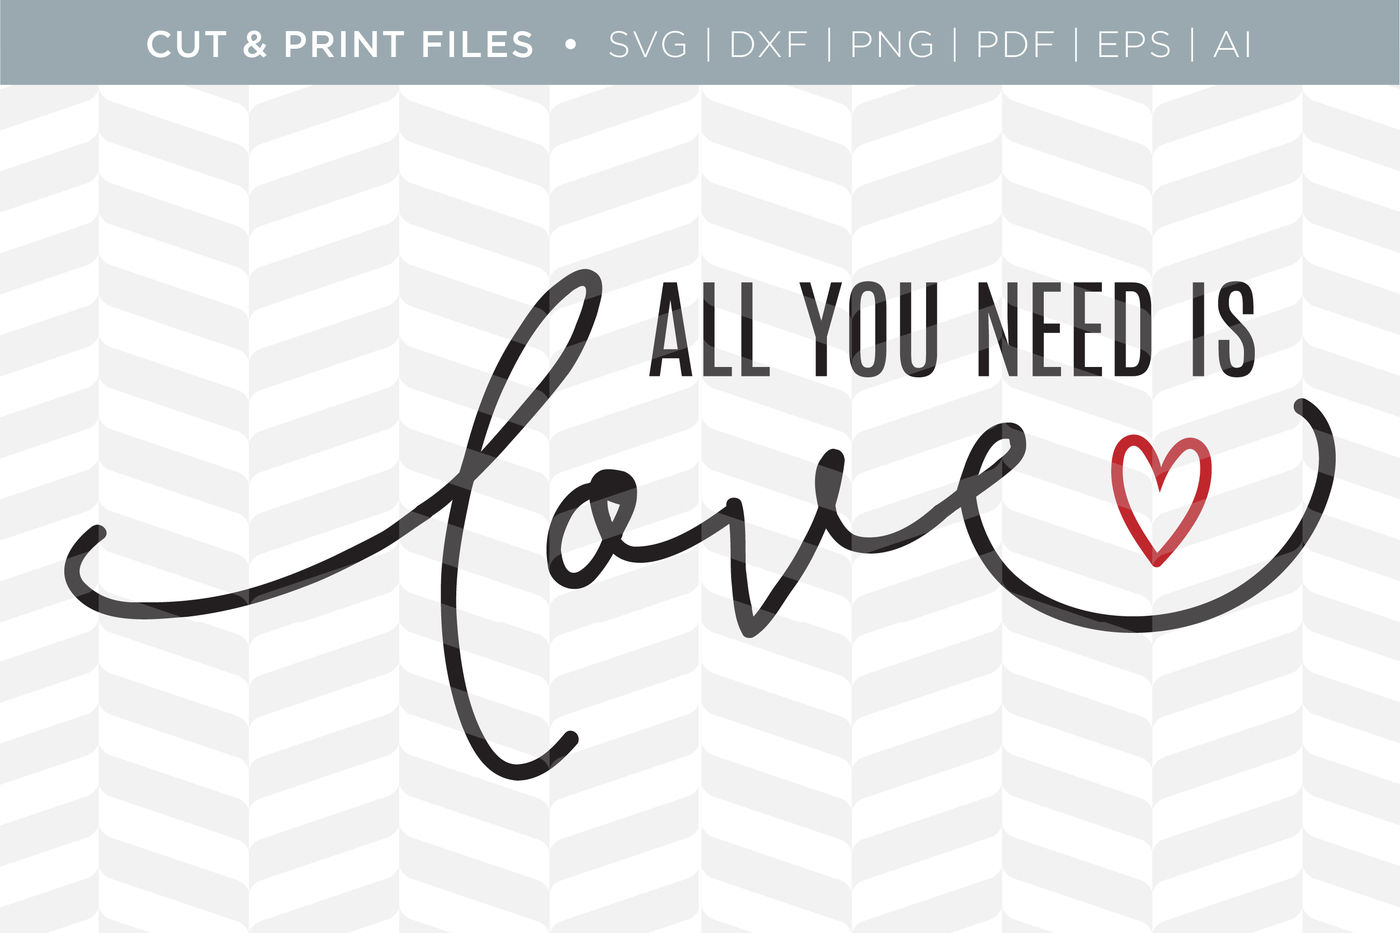 Need Is Love Dxf Svg Png Pdf Cut Print Files By Simply Bright Studio Thehungryjpeg Com